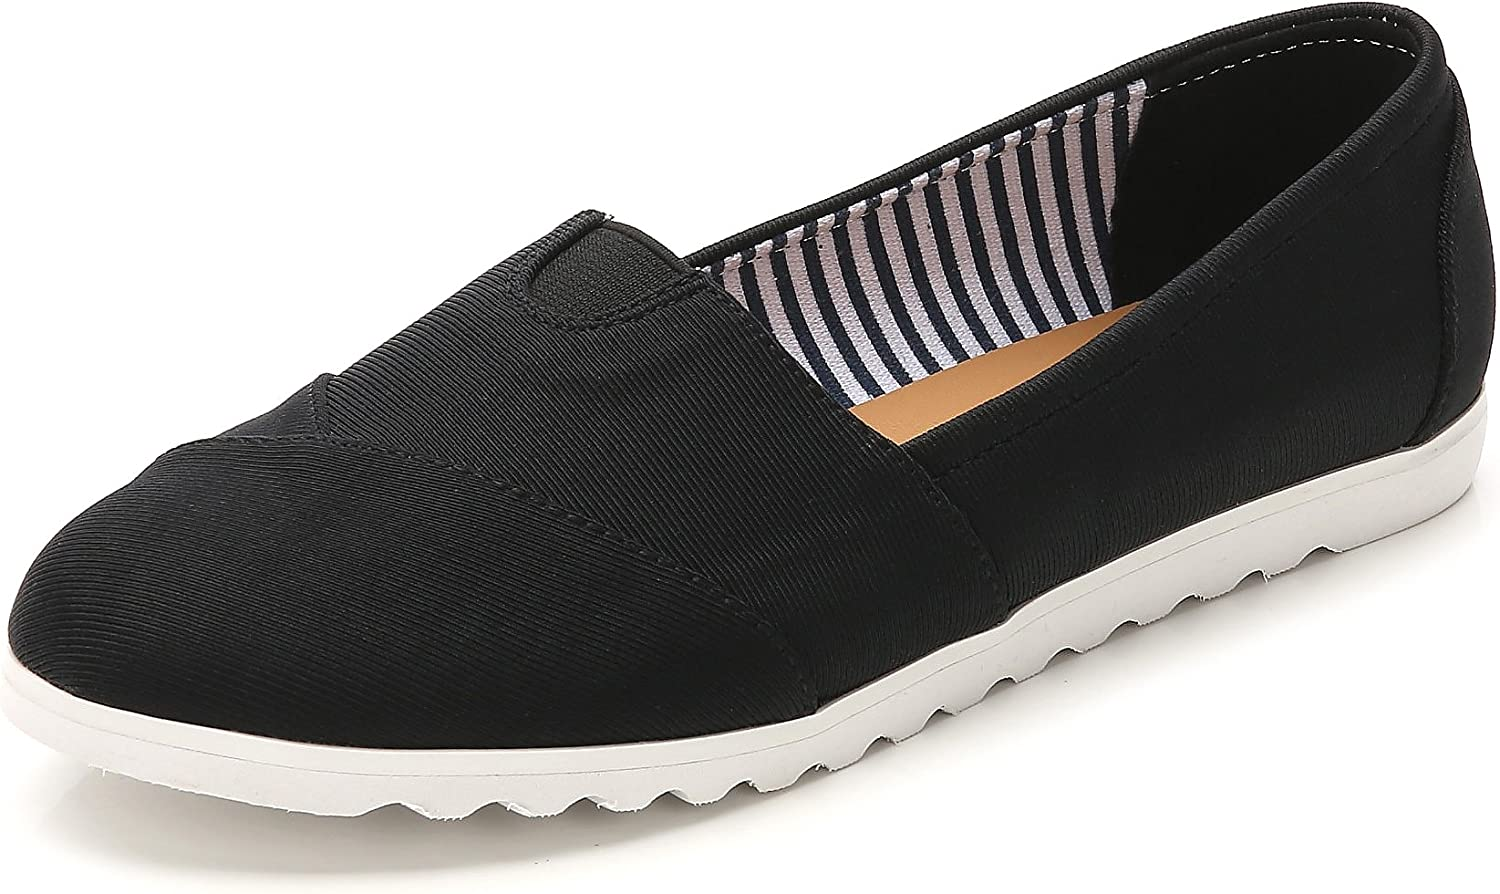 ComeShun Womens Shoes Canvas Flats Casual Loafers Comfort Slip On Sneakers